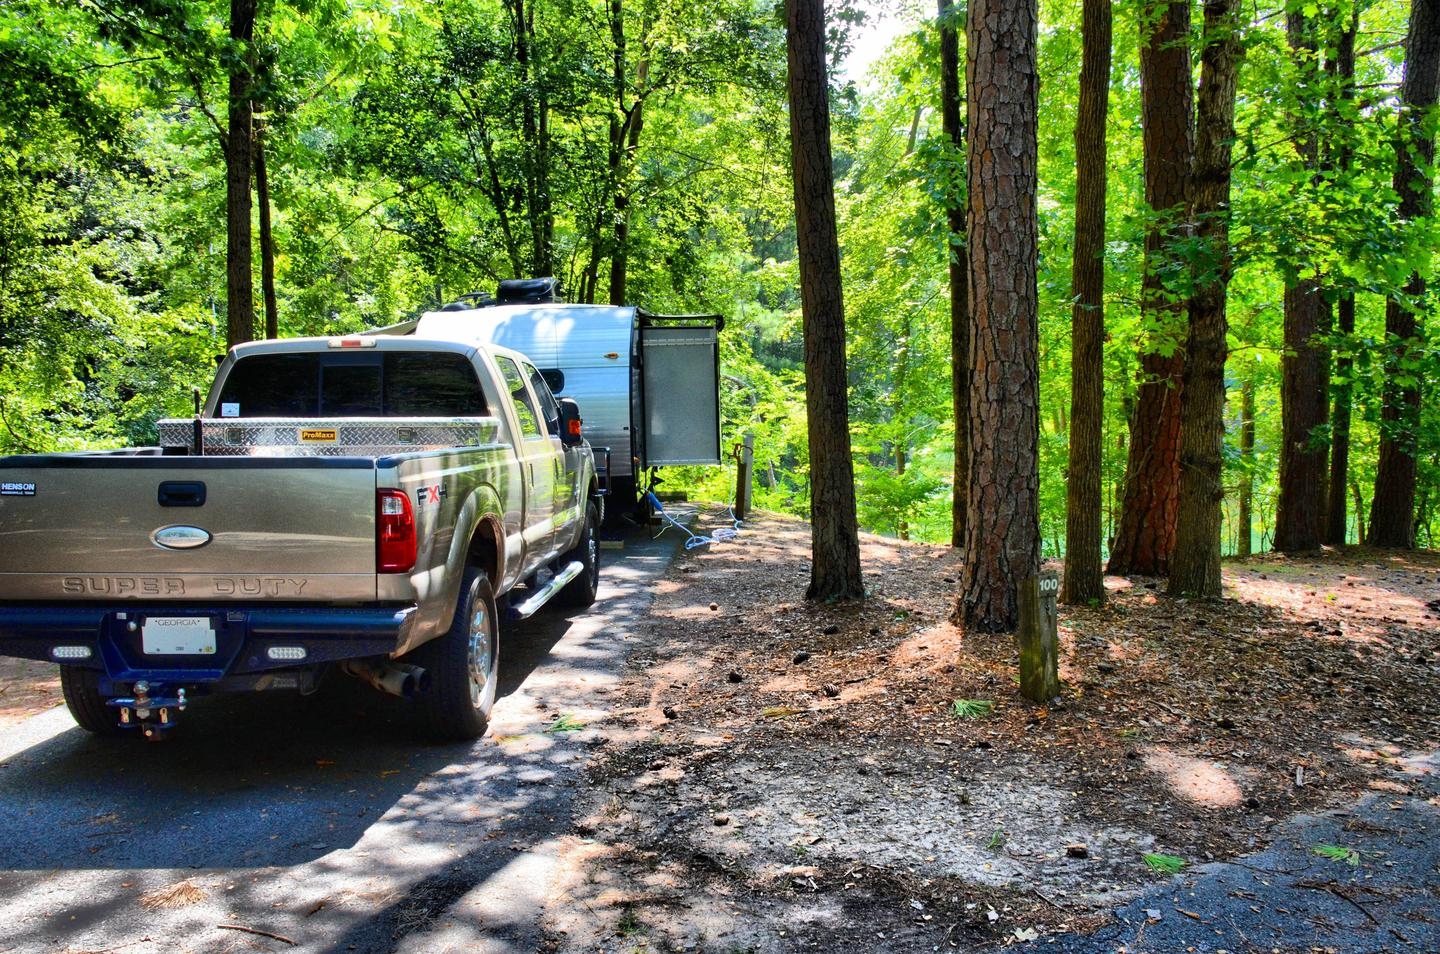 Utilities-side clearance, driveway slope.McKinney Campground, campsite 100.